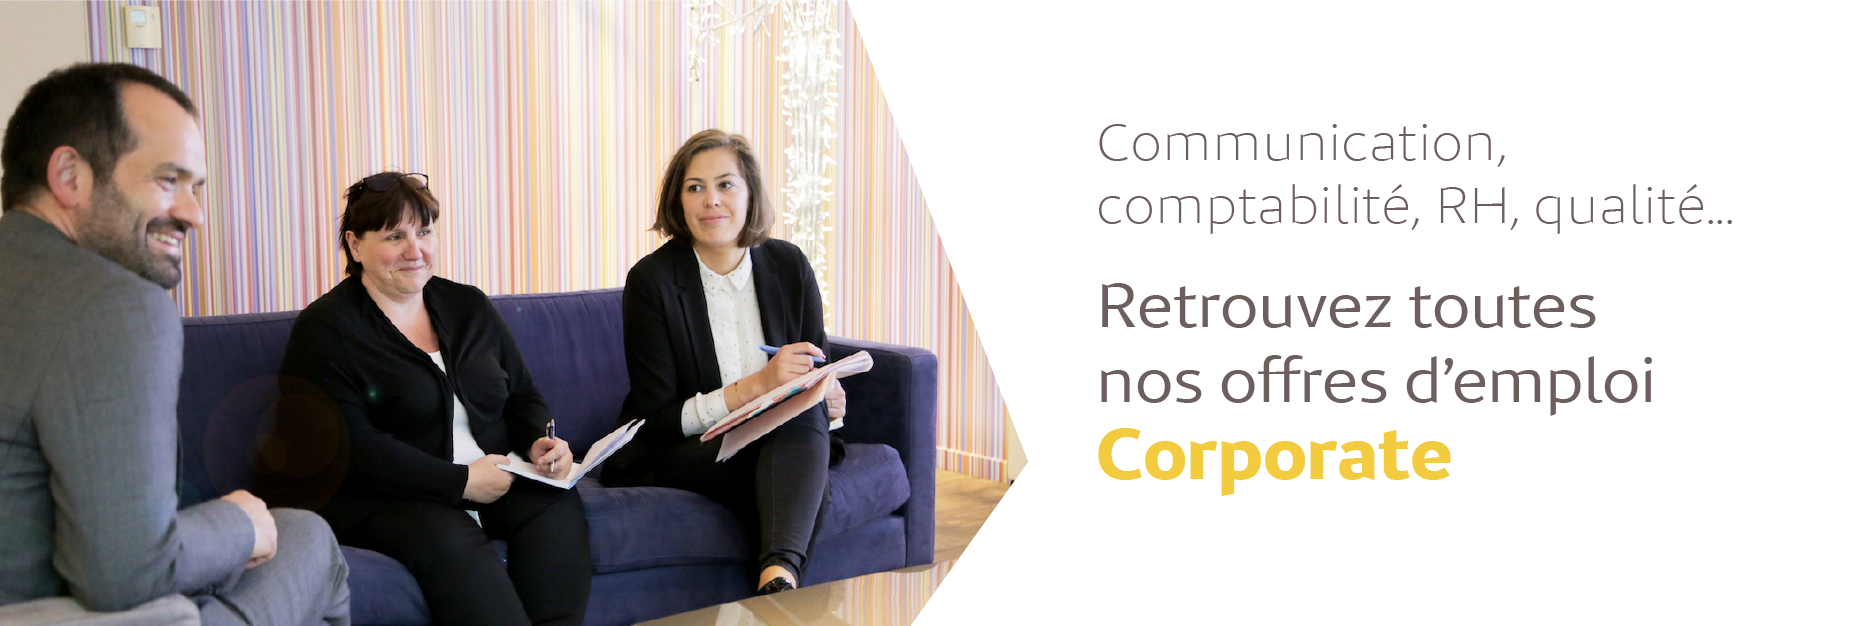 Mediametrie-Carriere-Offres-Corporate